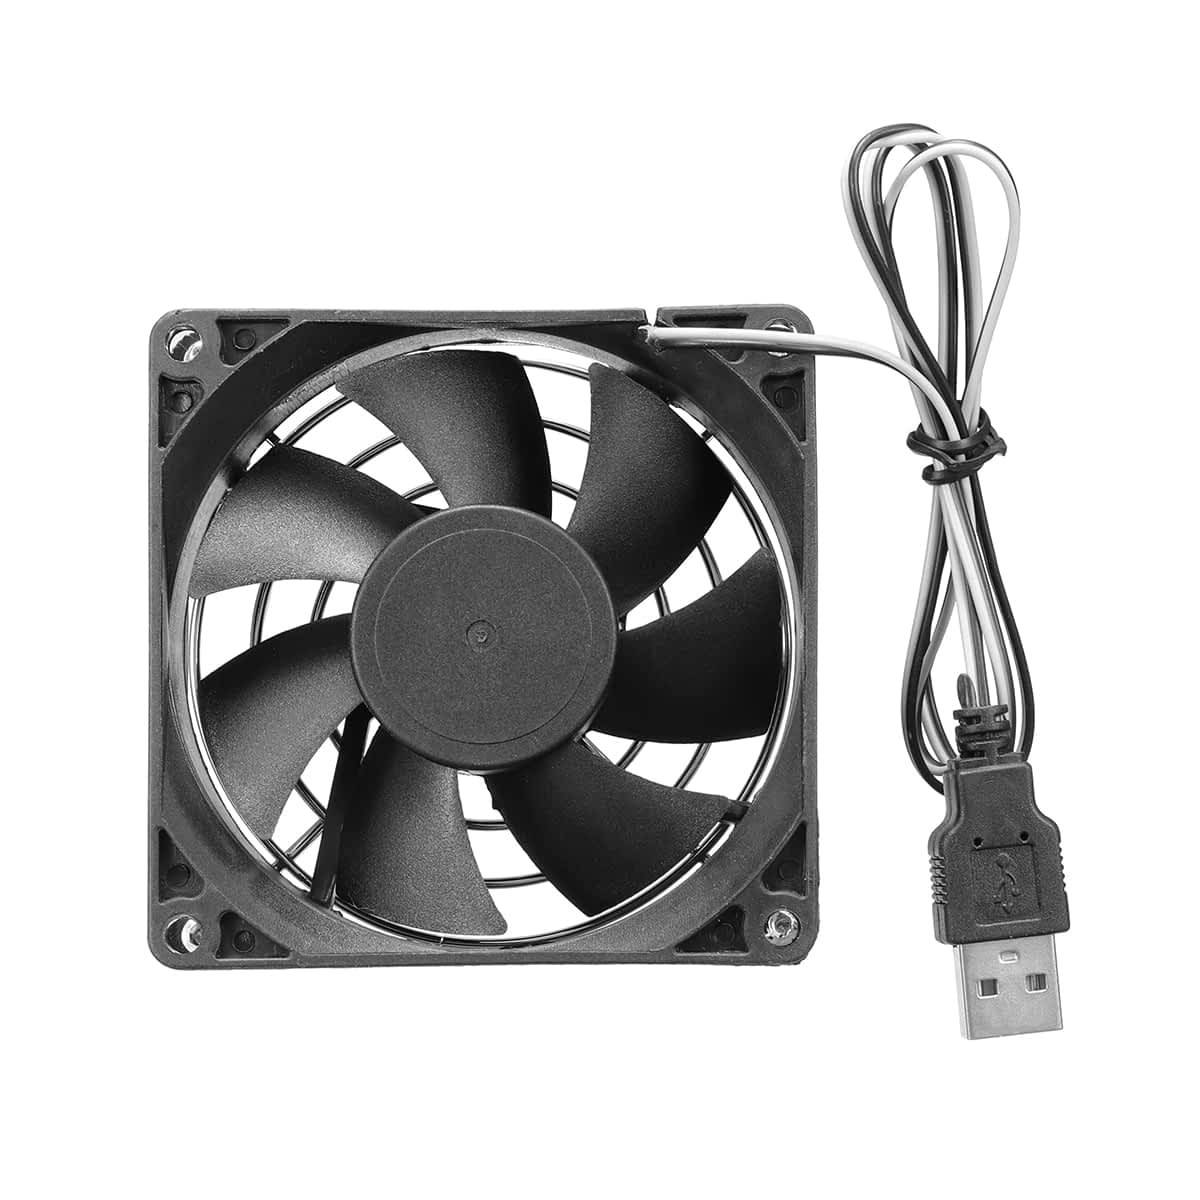 5V-80mm-Computer-Fan-Portable-USB-Cooler-Small-PC-CPU-Cooling-Computer-Components-Cooling-Accessories-Black.jpeg